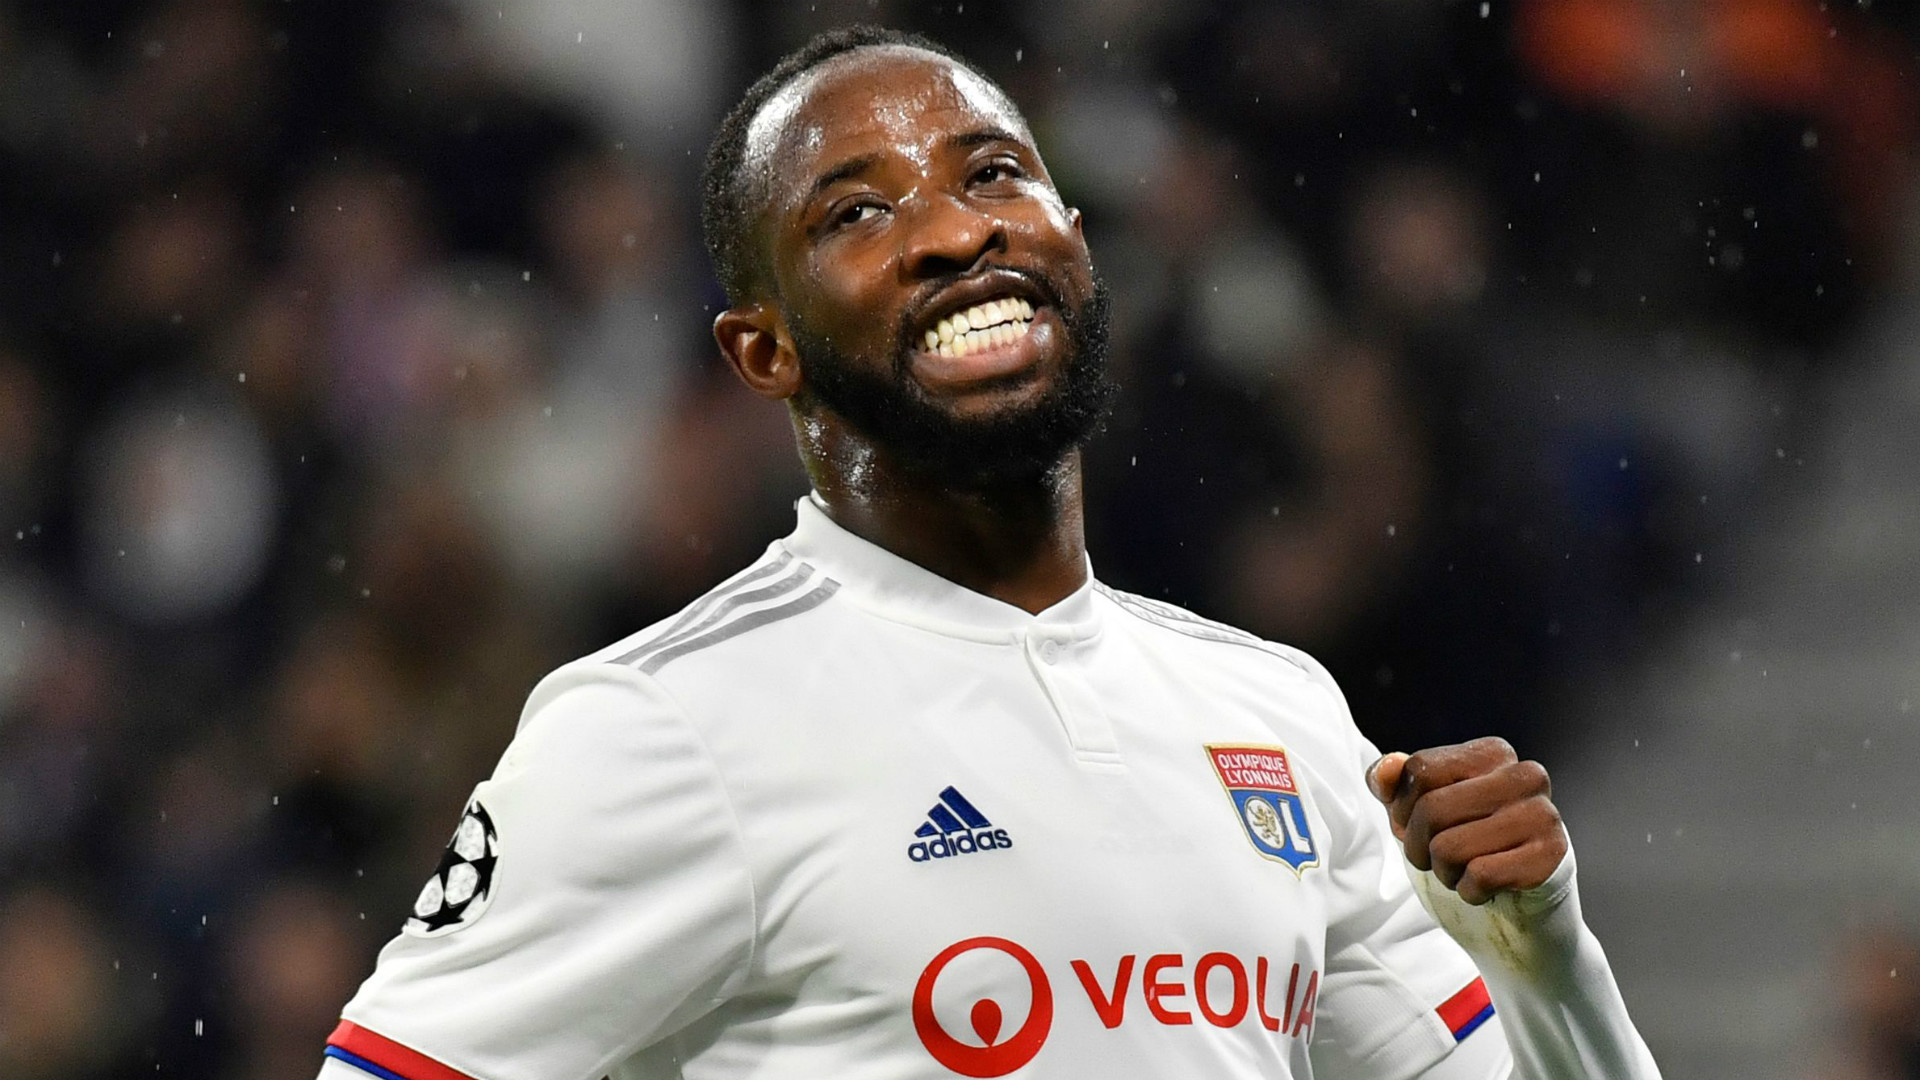 Dembele would be a 'magnificent signing' for Chelsea - Hasselbaink